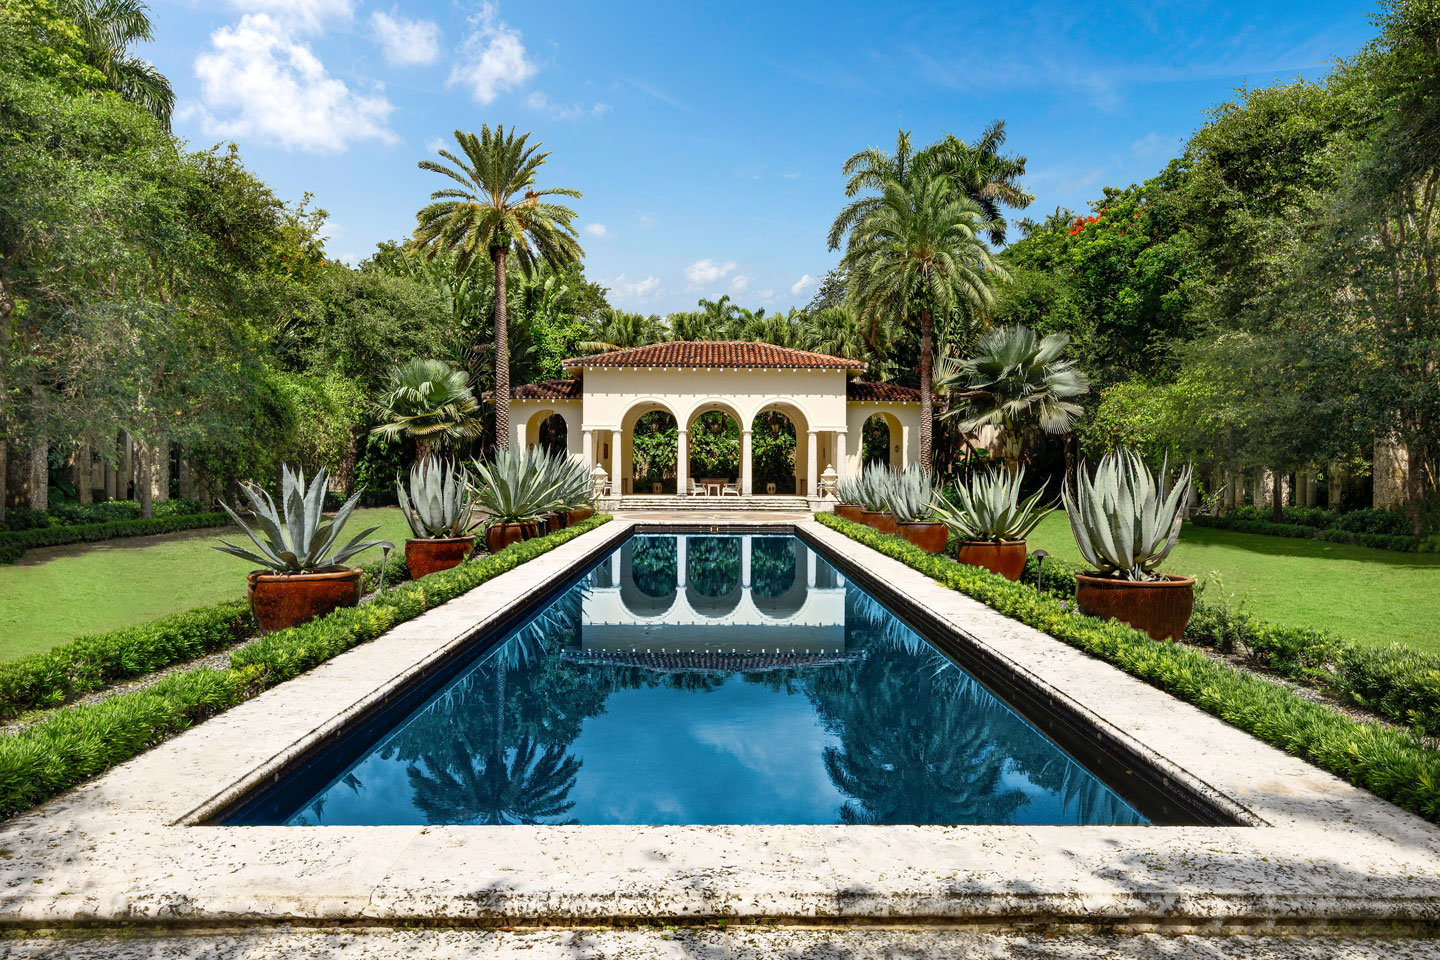 3725 Leafy Way, Coconut Grove, Miami, Florida, USA | Pool | Listed by Dennis Carvajal, Real Estate Agent, ONE Sotheby's International Realty | Finest Residences